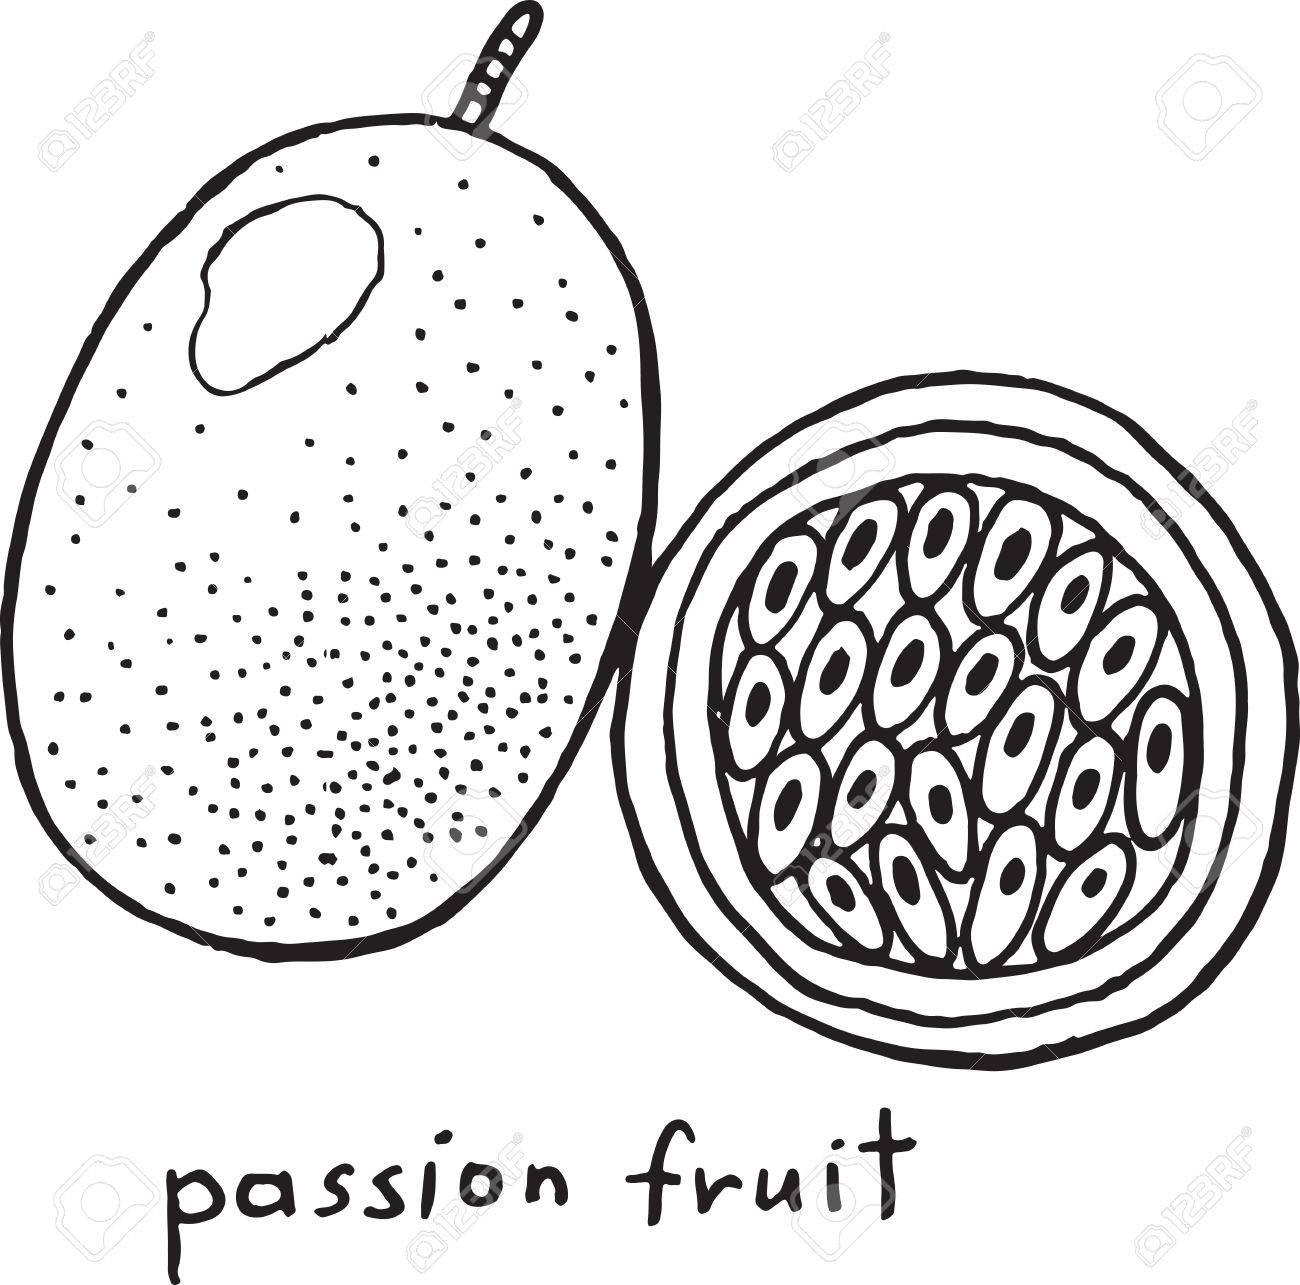 Passion fruit coloring page  Graphic vector black and white art